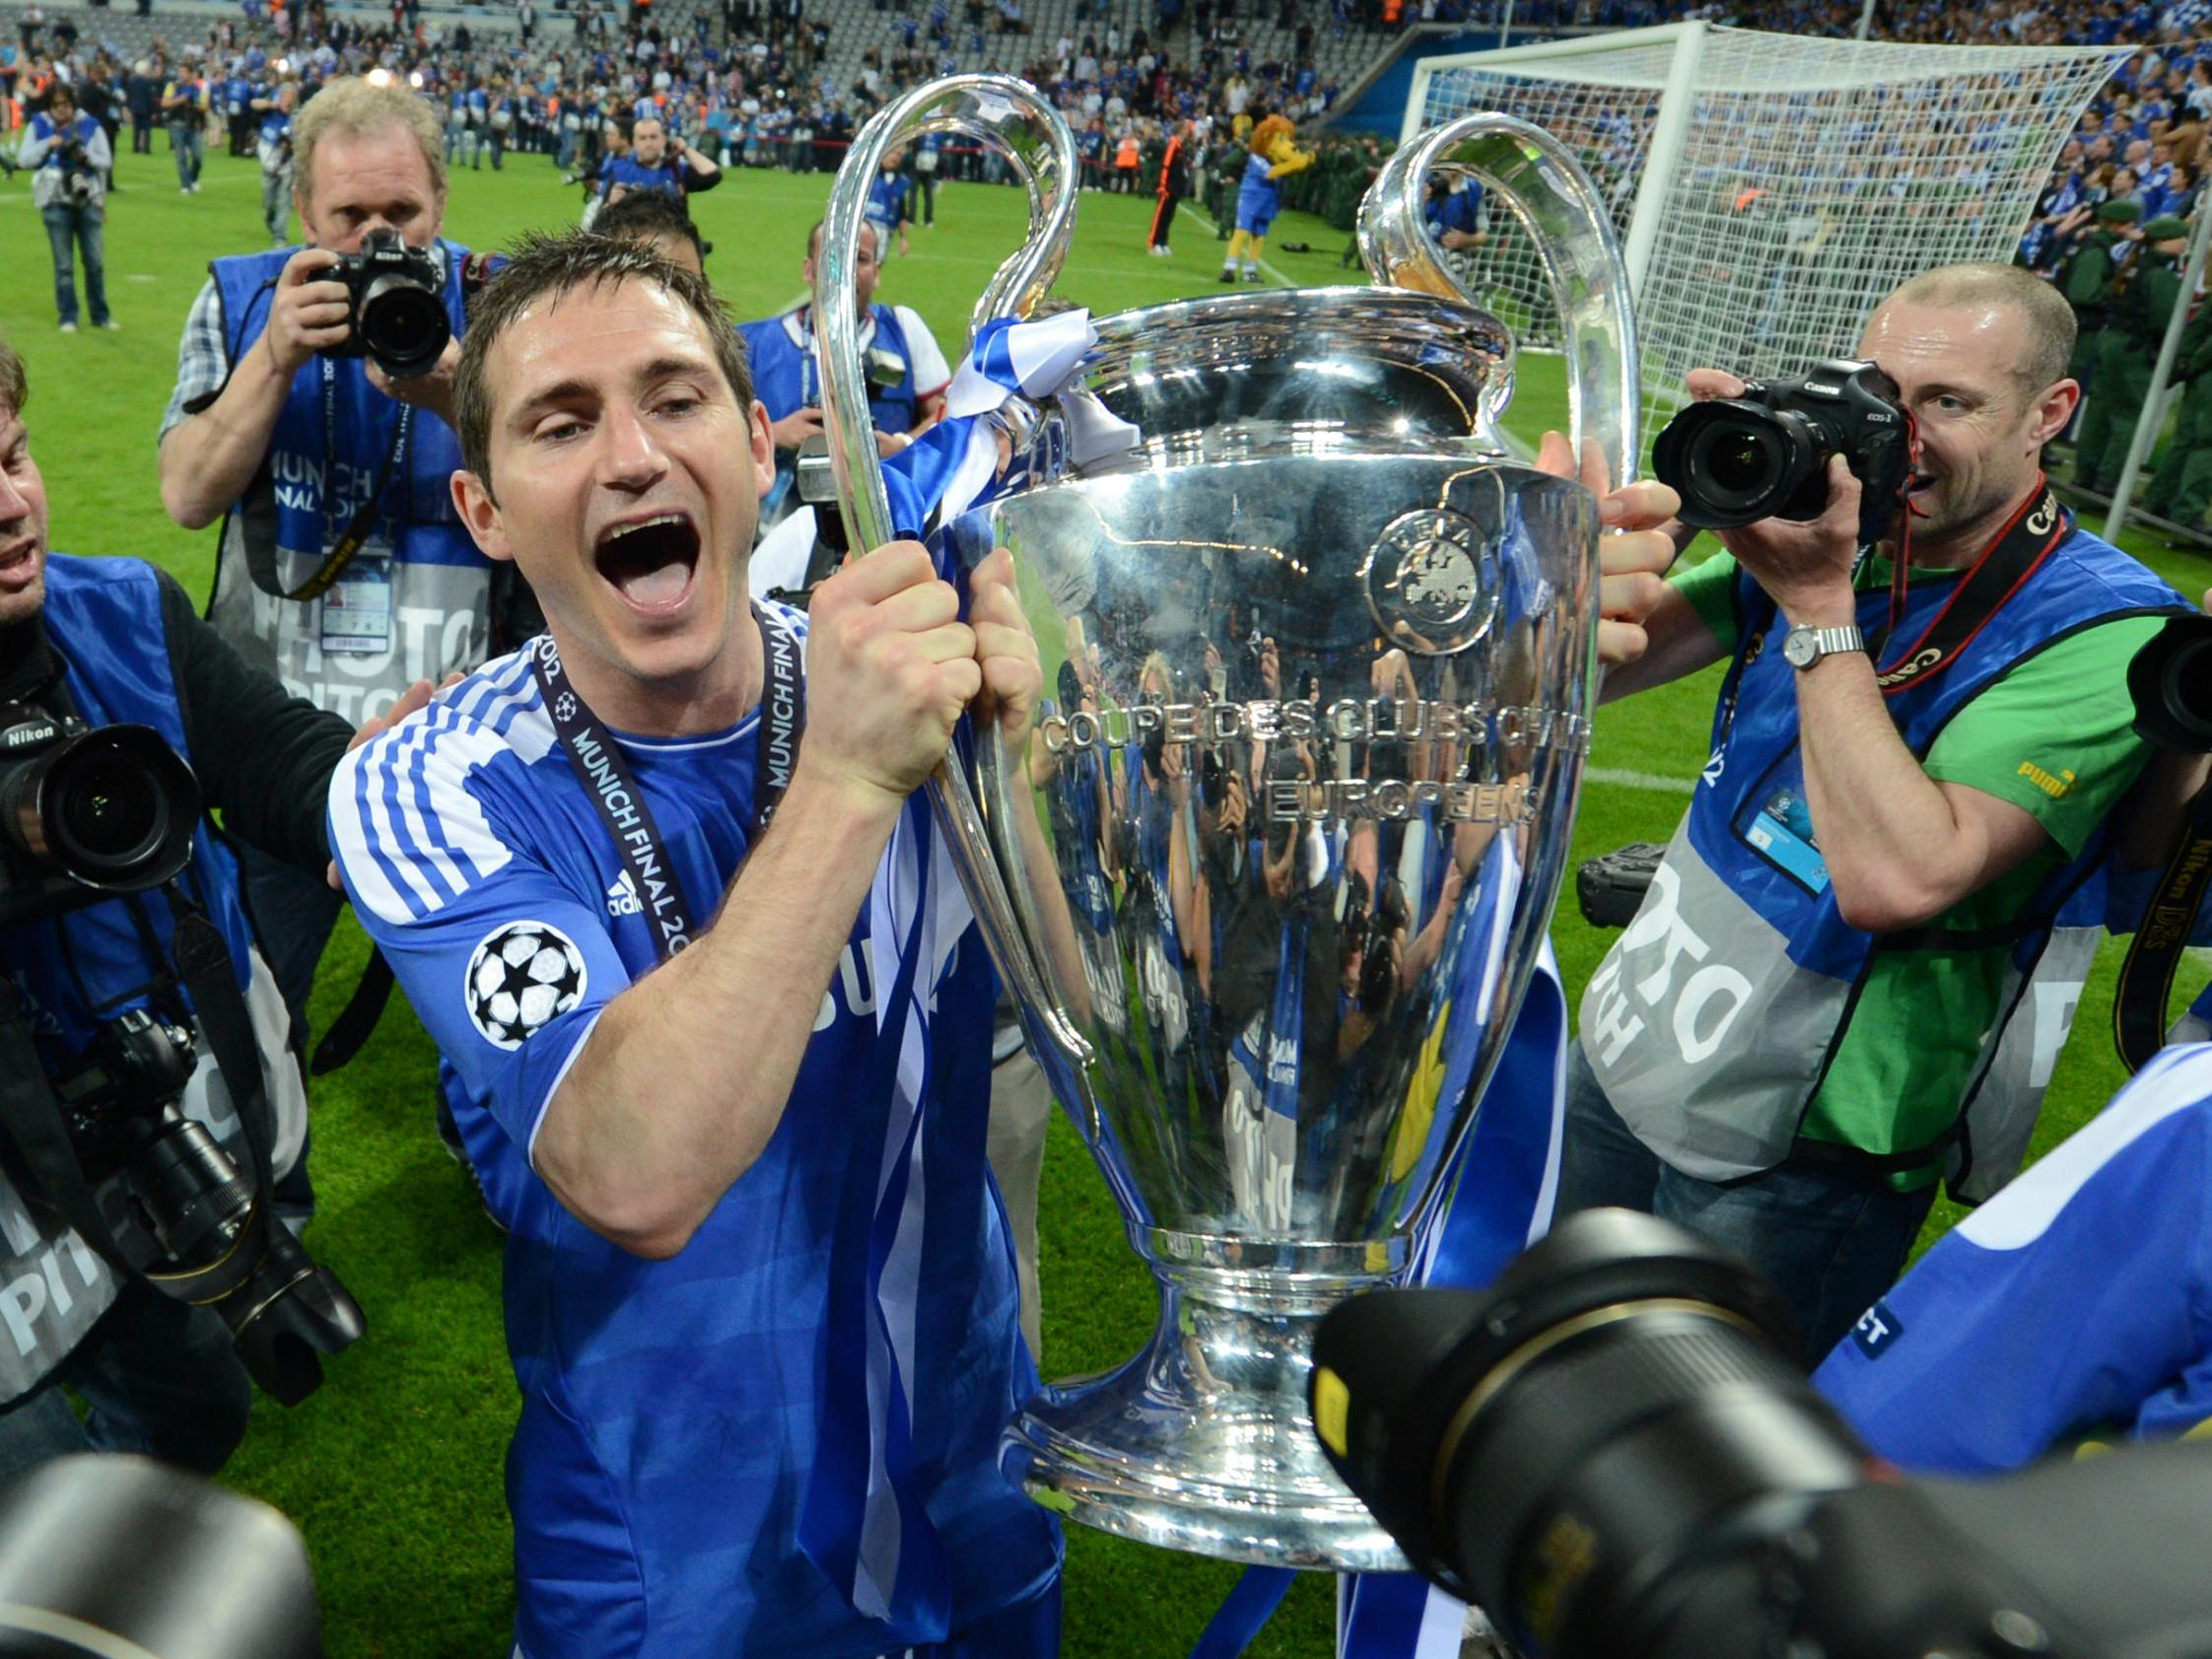 Chelsea vs Valencia: Frank Lampard and a lifelong love affair with the Champions League